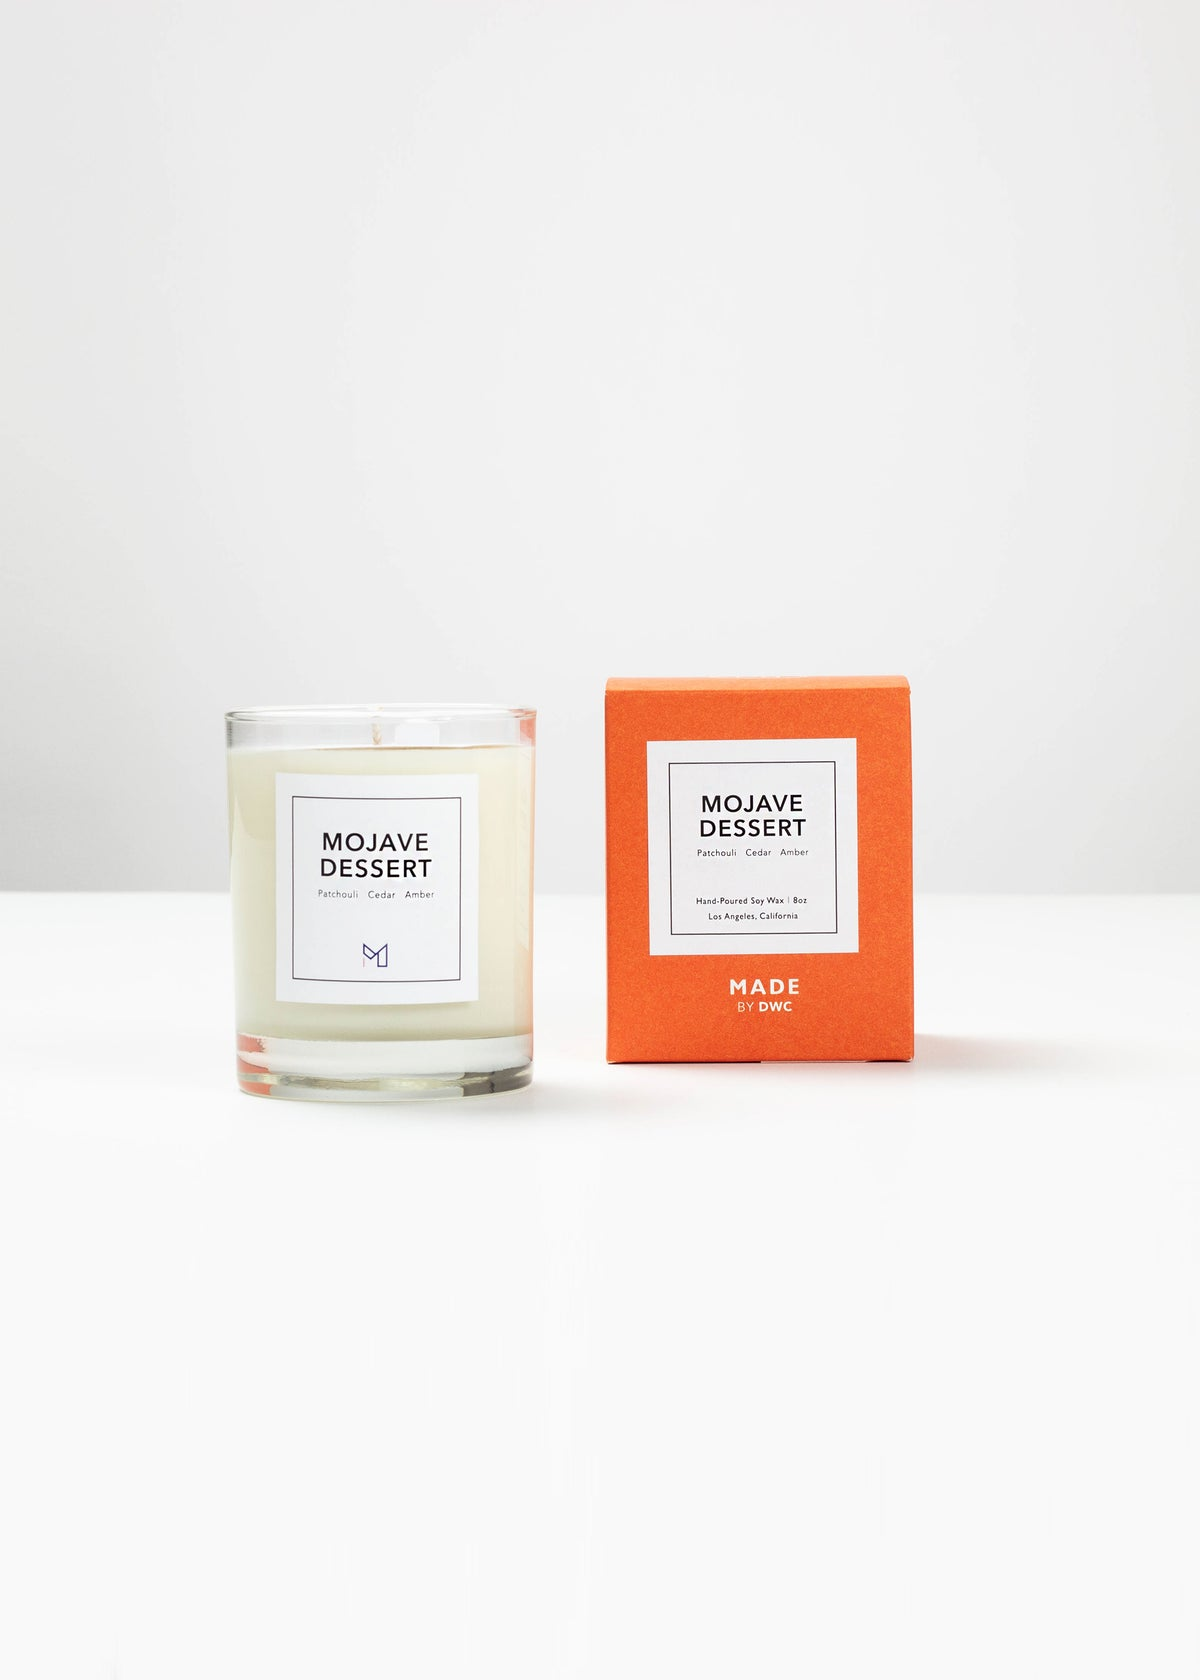 Mojave Dessert Candle